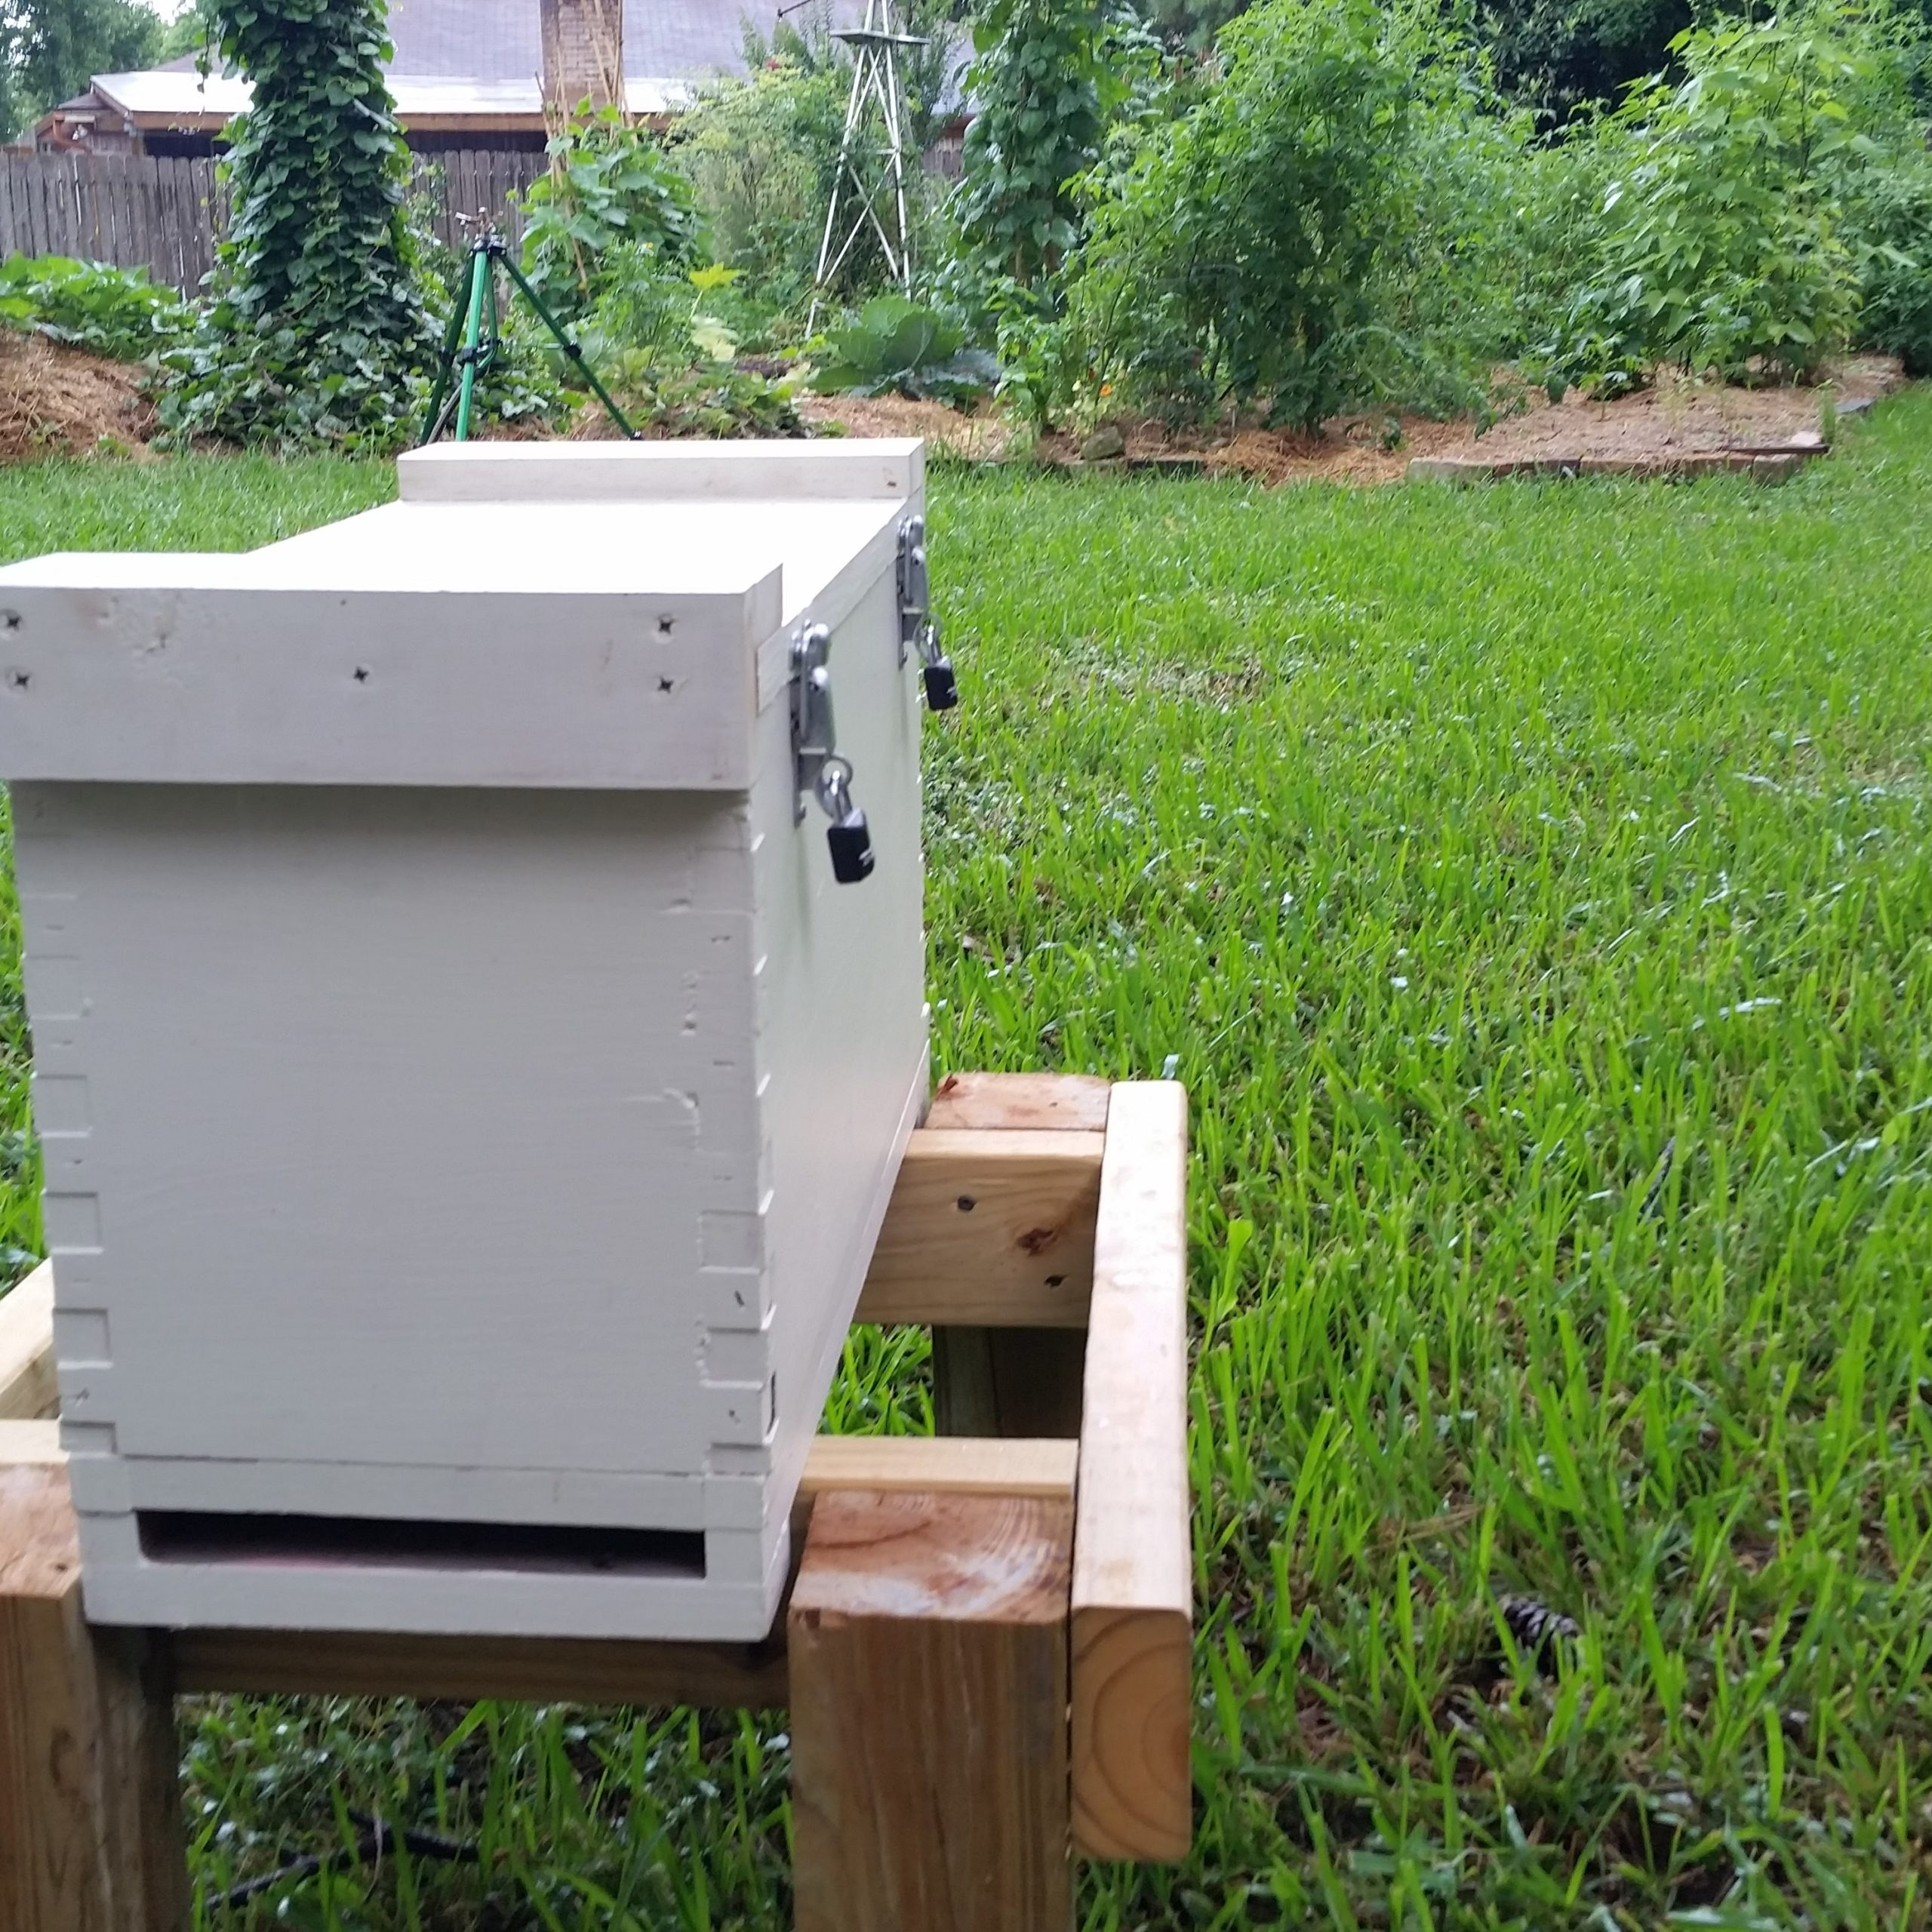 BZ Honey - One of our pollination nucs working at a backyard garden in the NW Houston area.